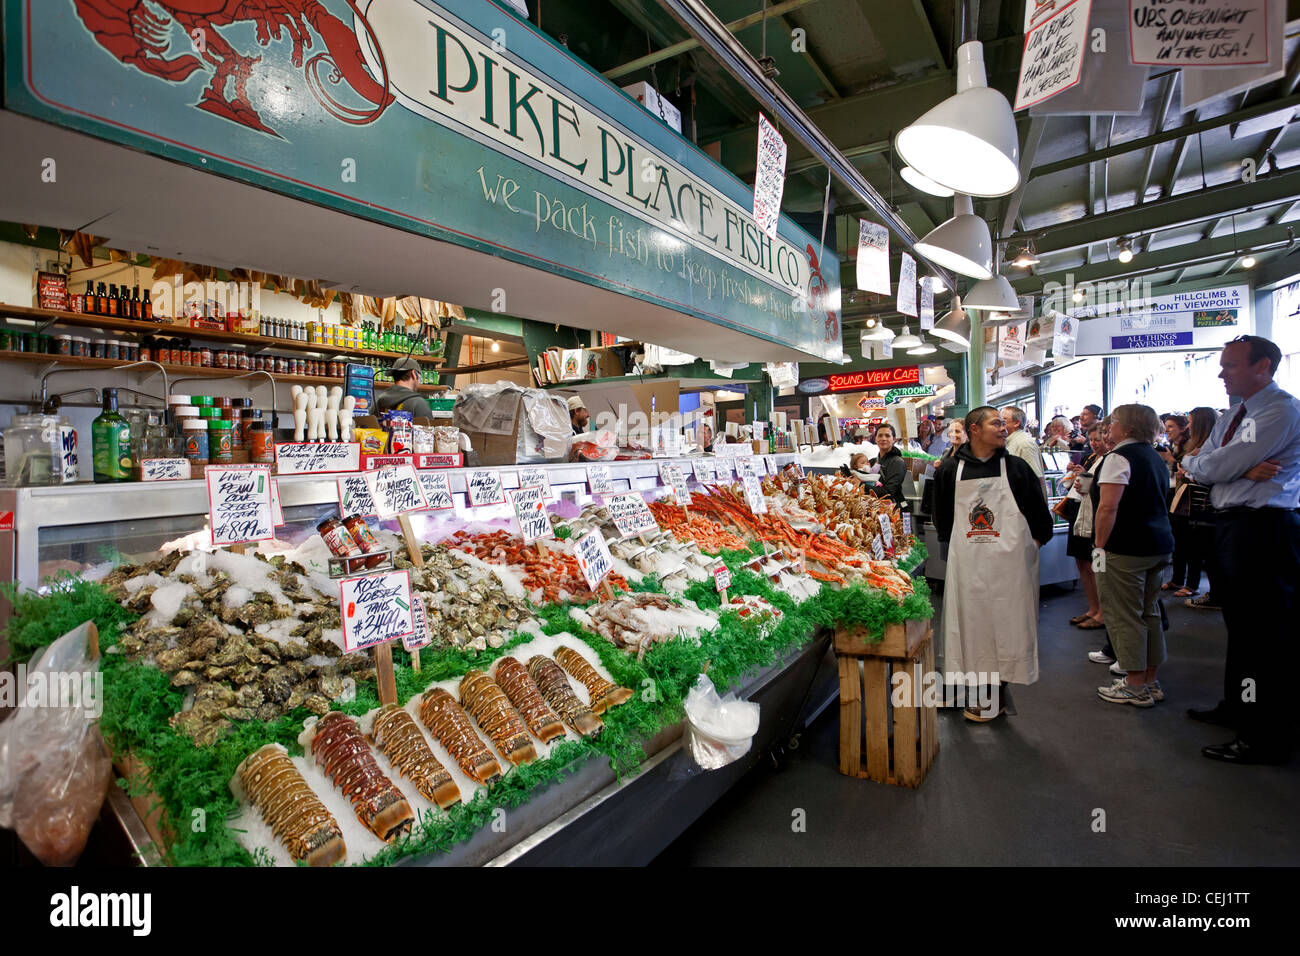 Seafood shop pike place market seattle usa stock photo for Fishing store seattle